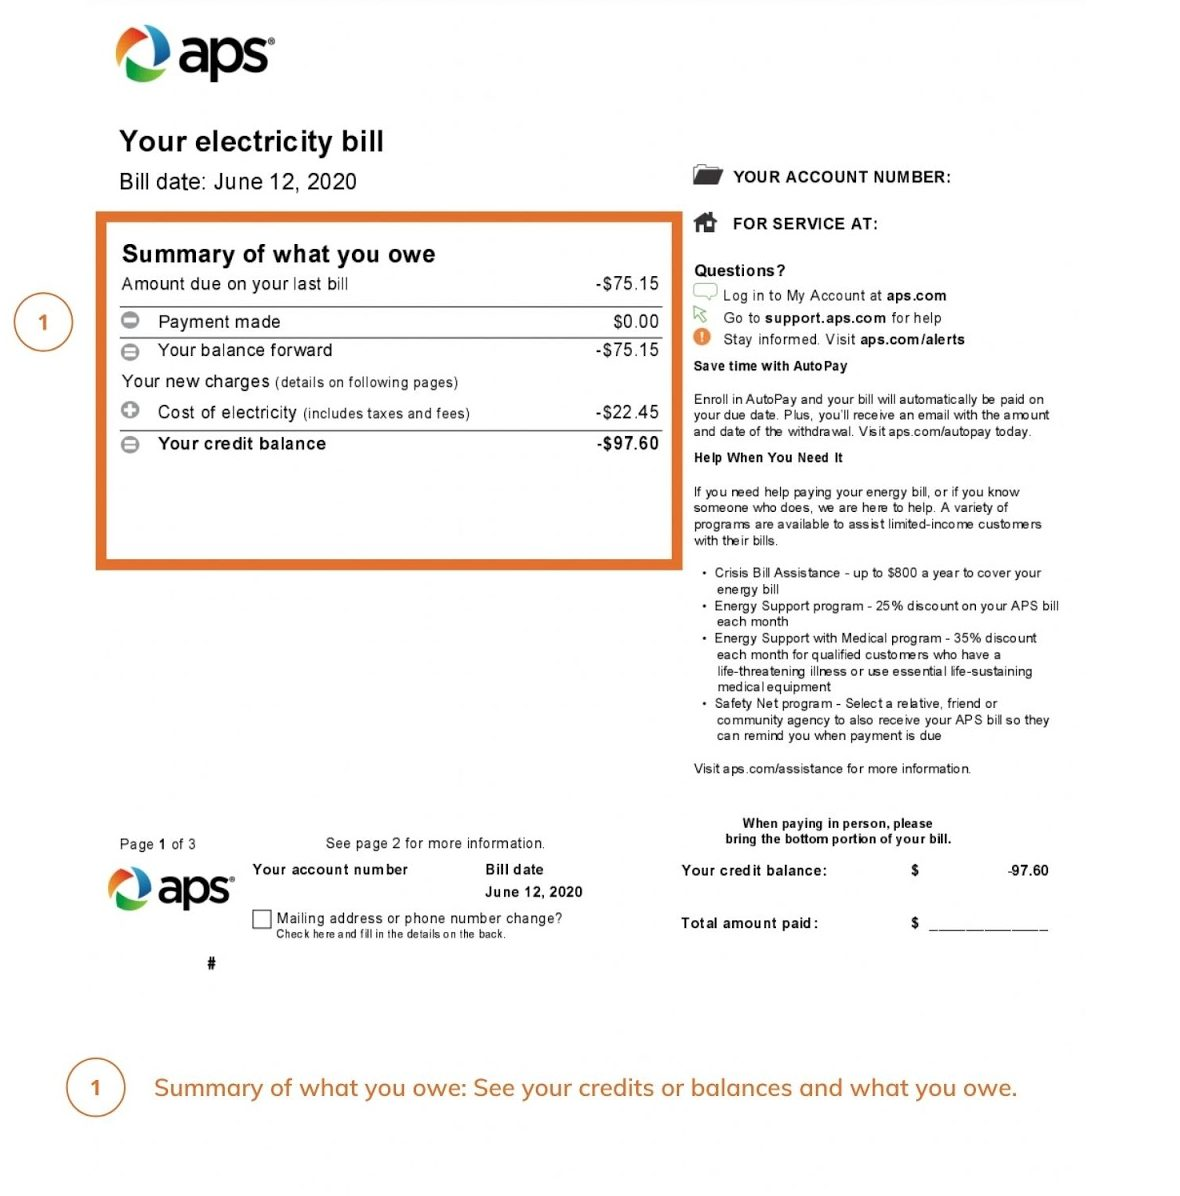 APS Electric Bill - Summary of what you owe